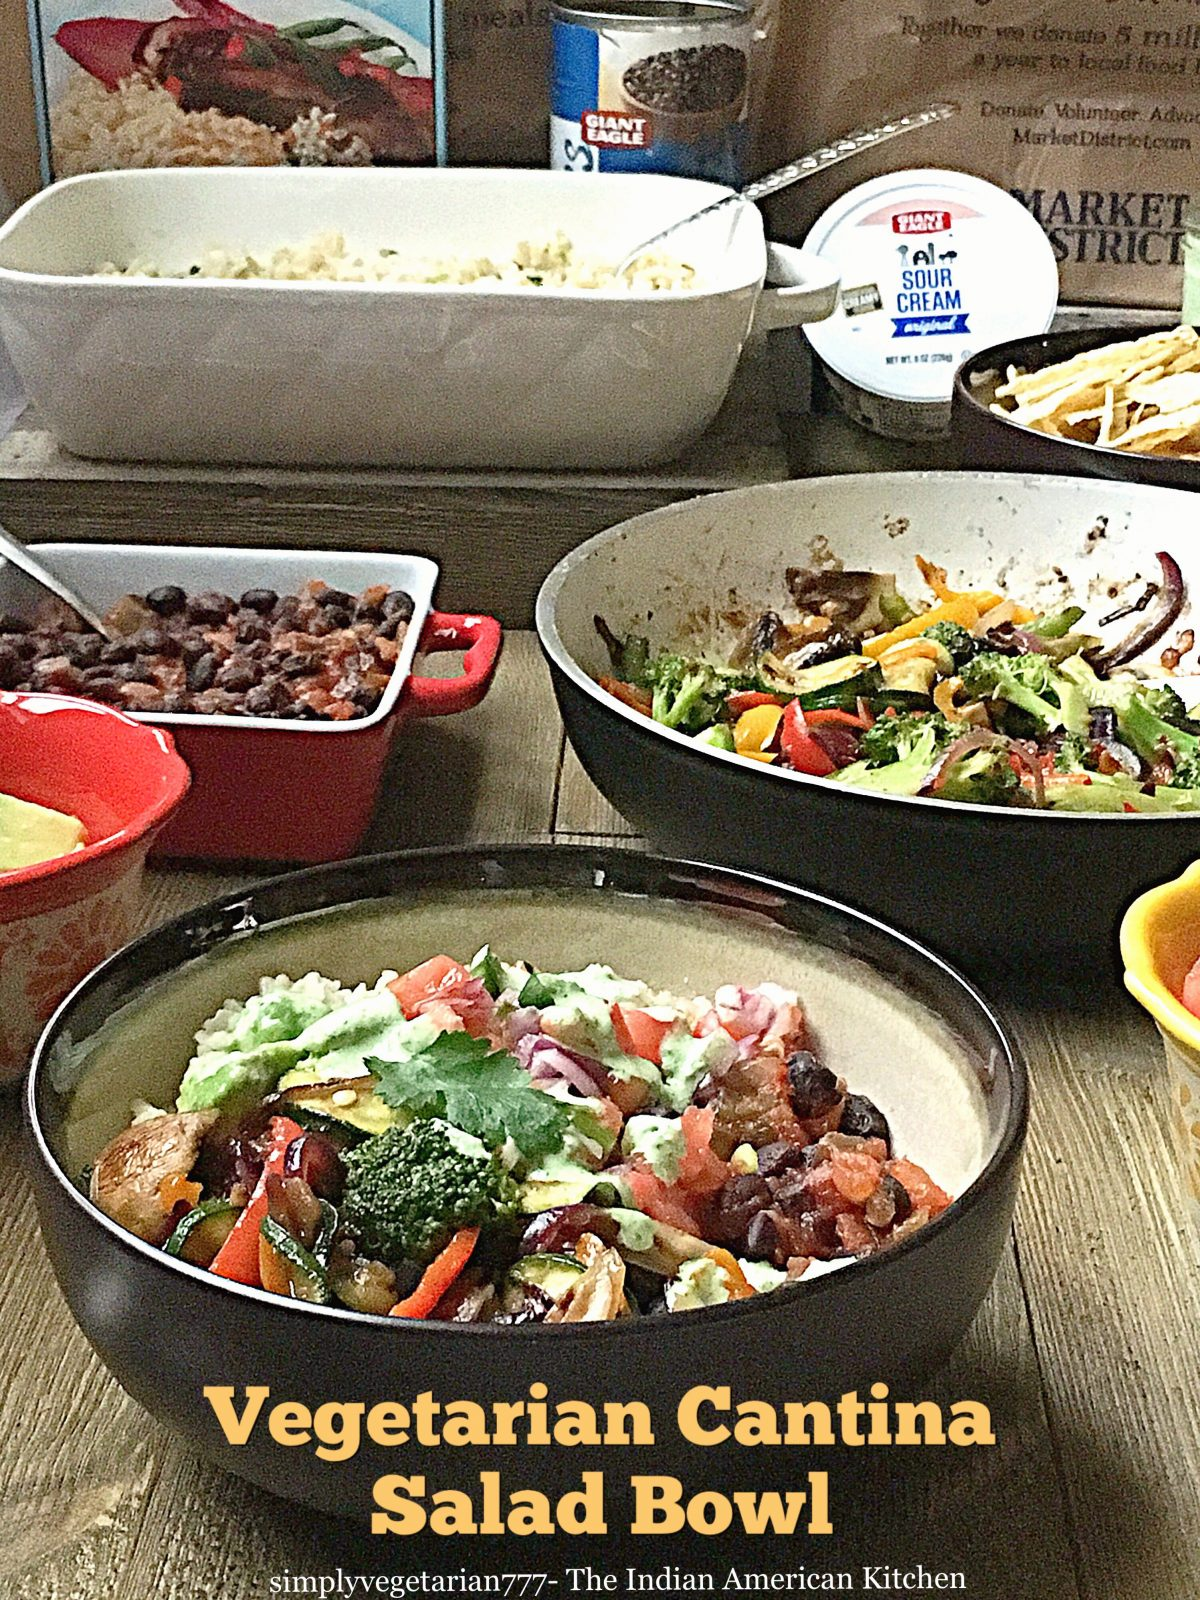 Vegetarian Cantina Salad Bowl, Tex Mex Salad Bowl, Giant Eagle Curbside Express Delivery #ad #GiantEagleDelivers  #vegetariansalad #texmex #cantinasalad #easyrecipes